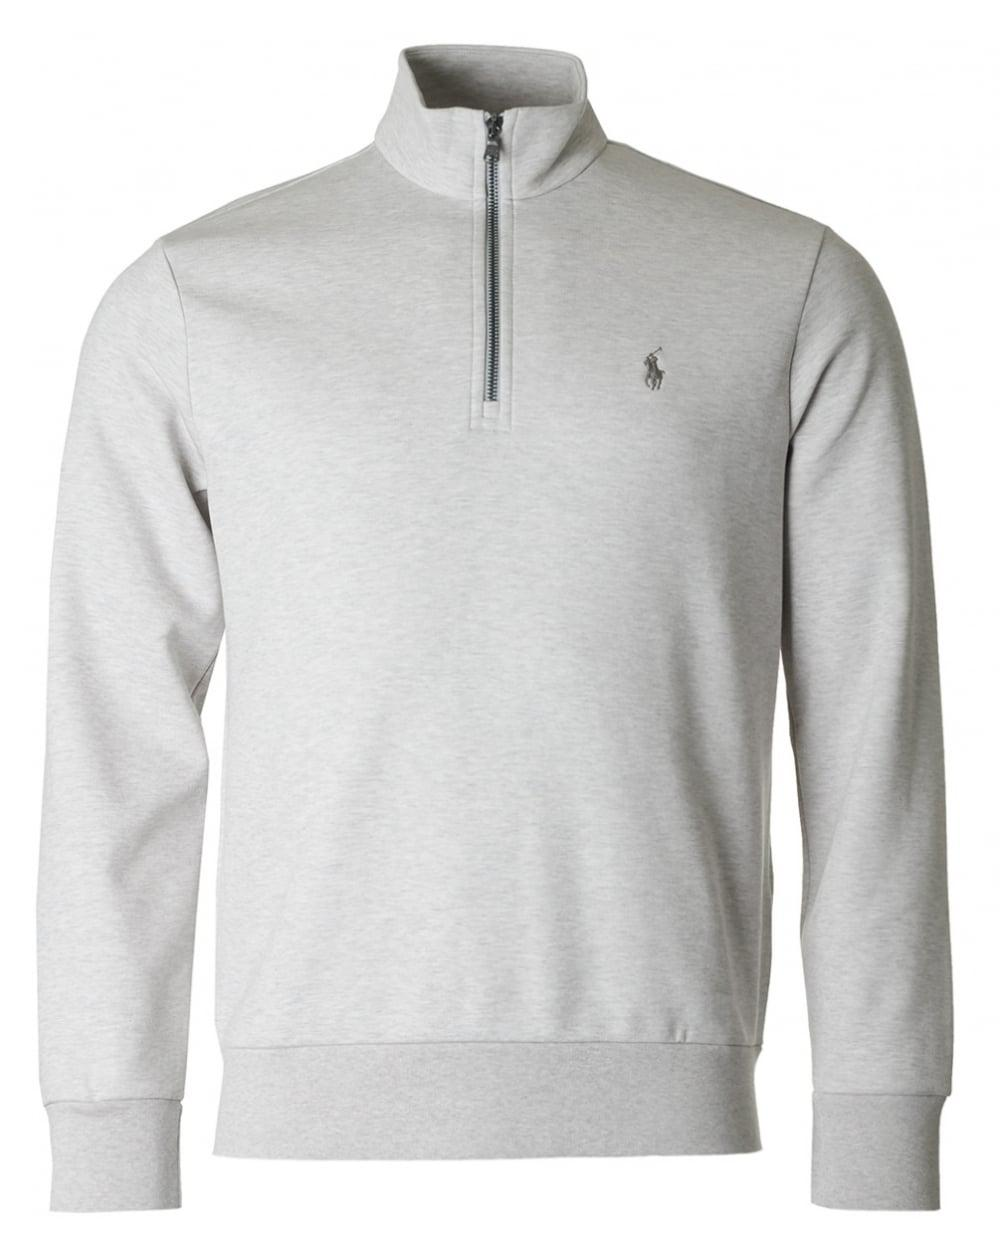 731a4b1b71de Lyst - Polo Ralph Lauren Double Knit Half Zip Sweat in .